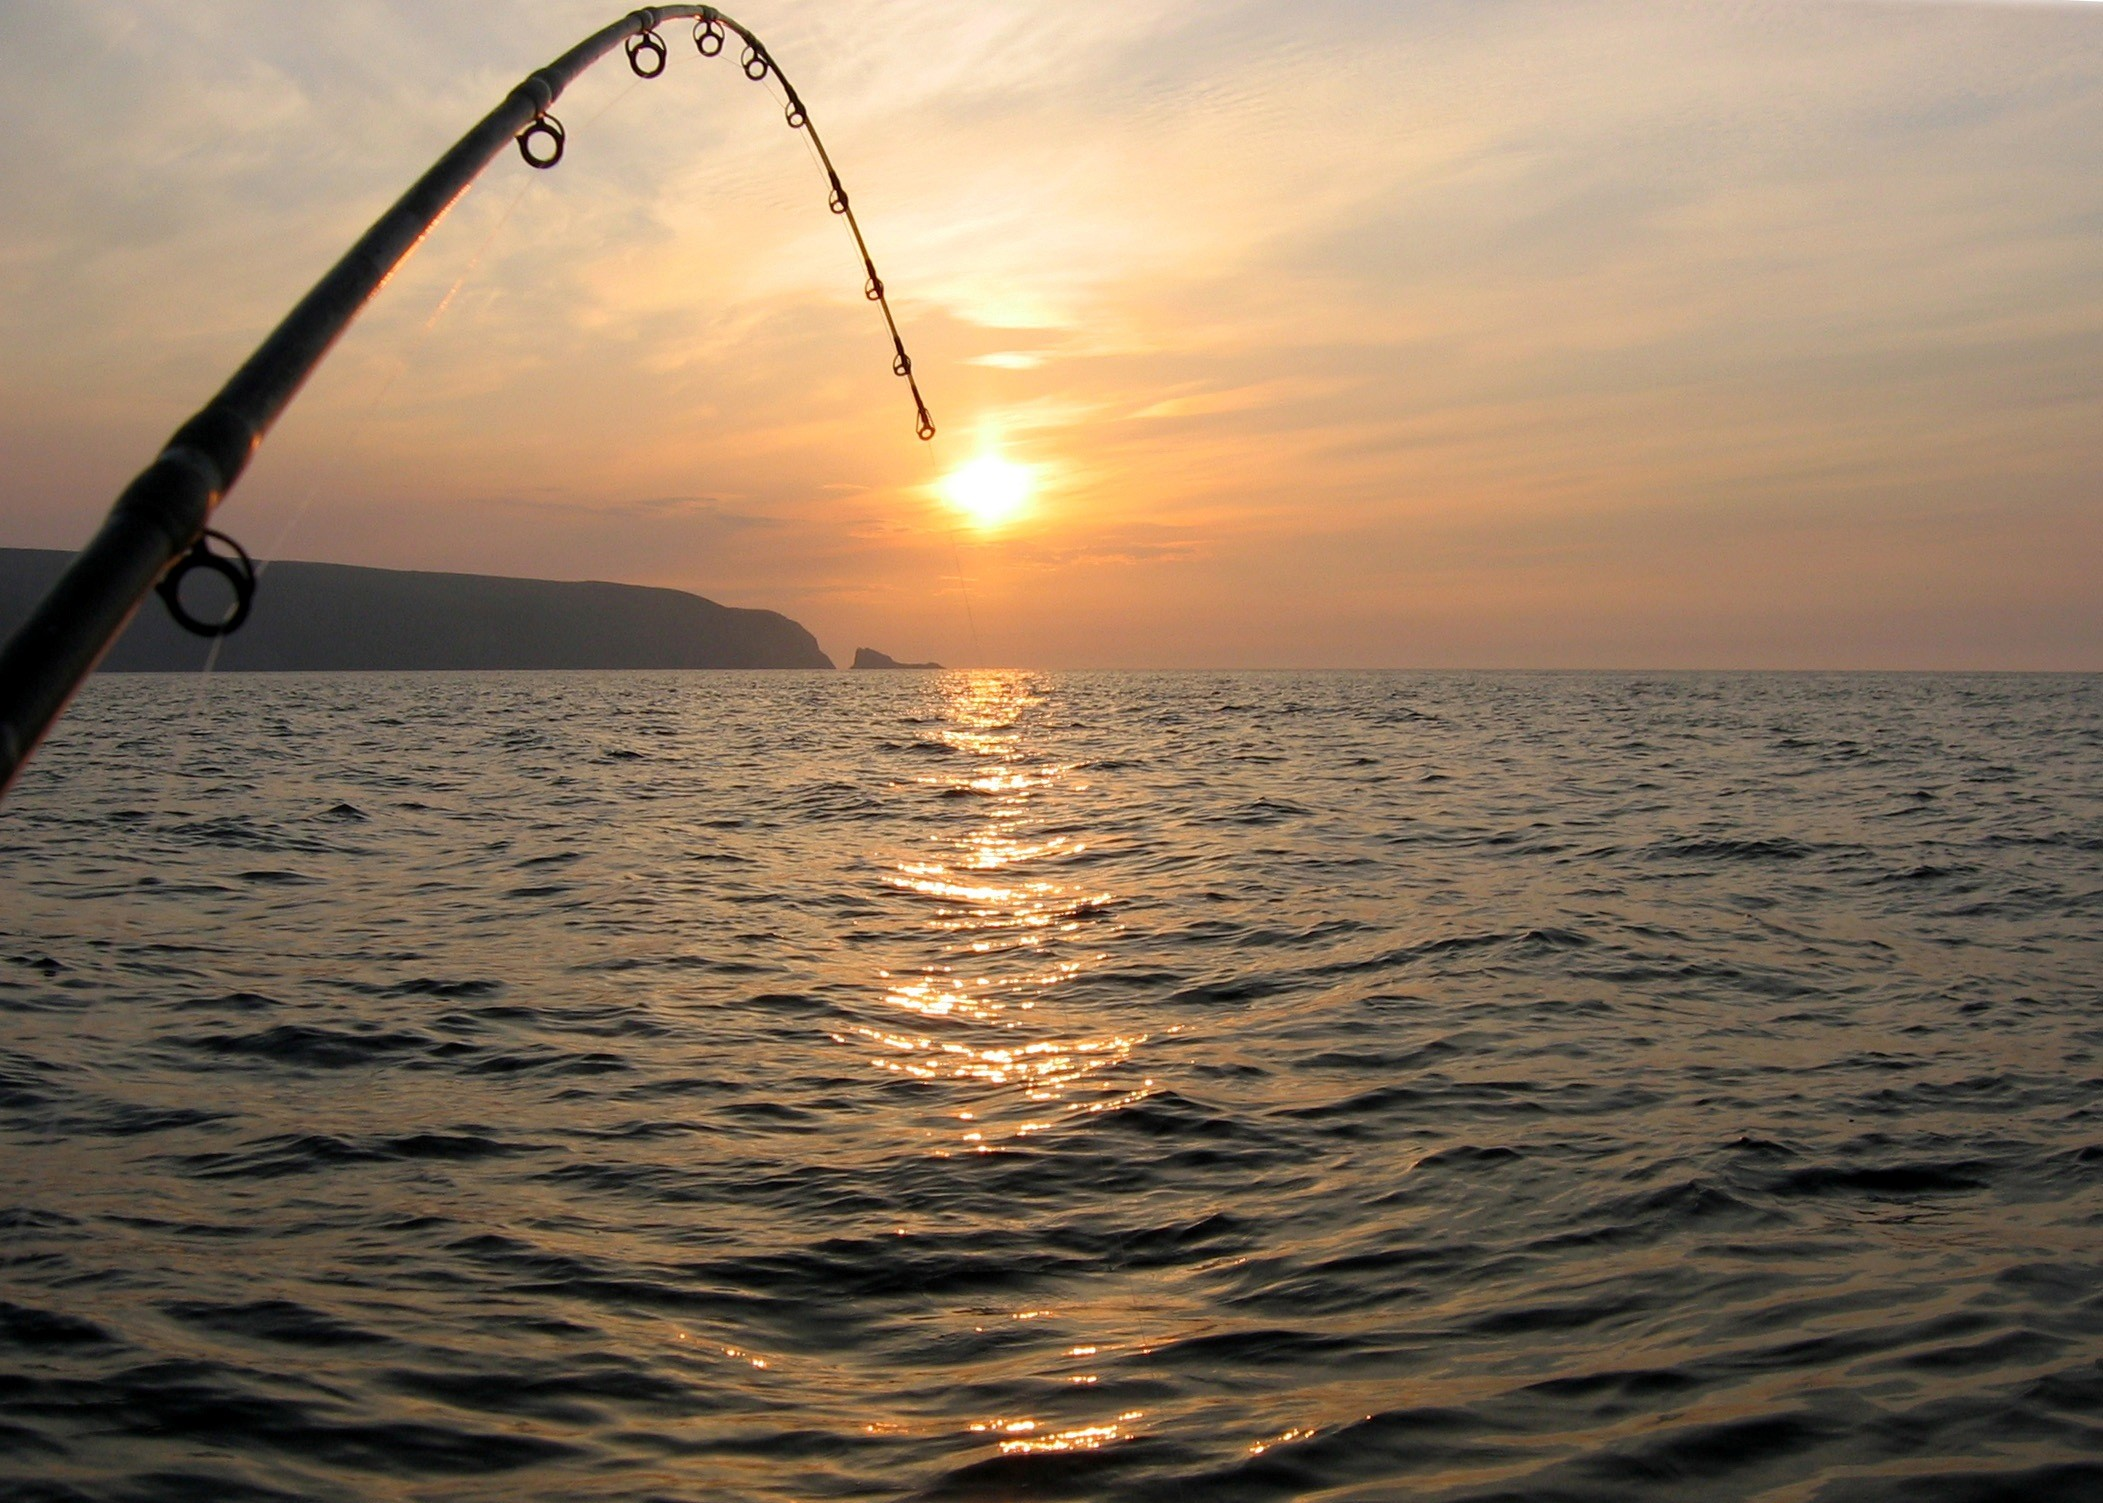 Bass Fishing Wallpapers Android Apps on Google Play